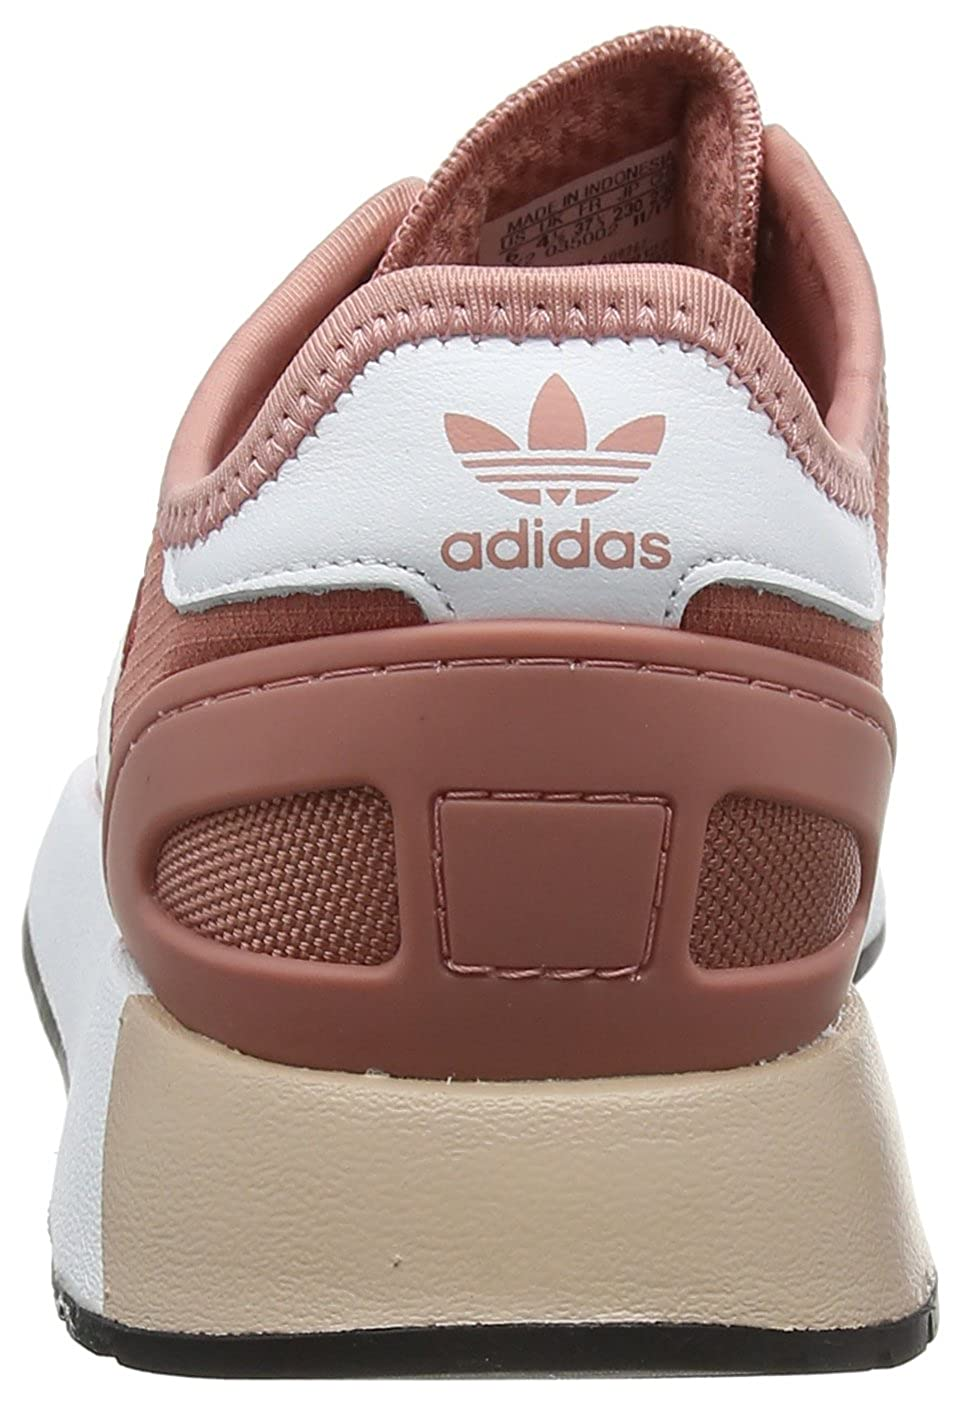 Amazon.com | adidas Womens N-5923 W, ASH Pink/White, 6 US | Fashion Sneakers